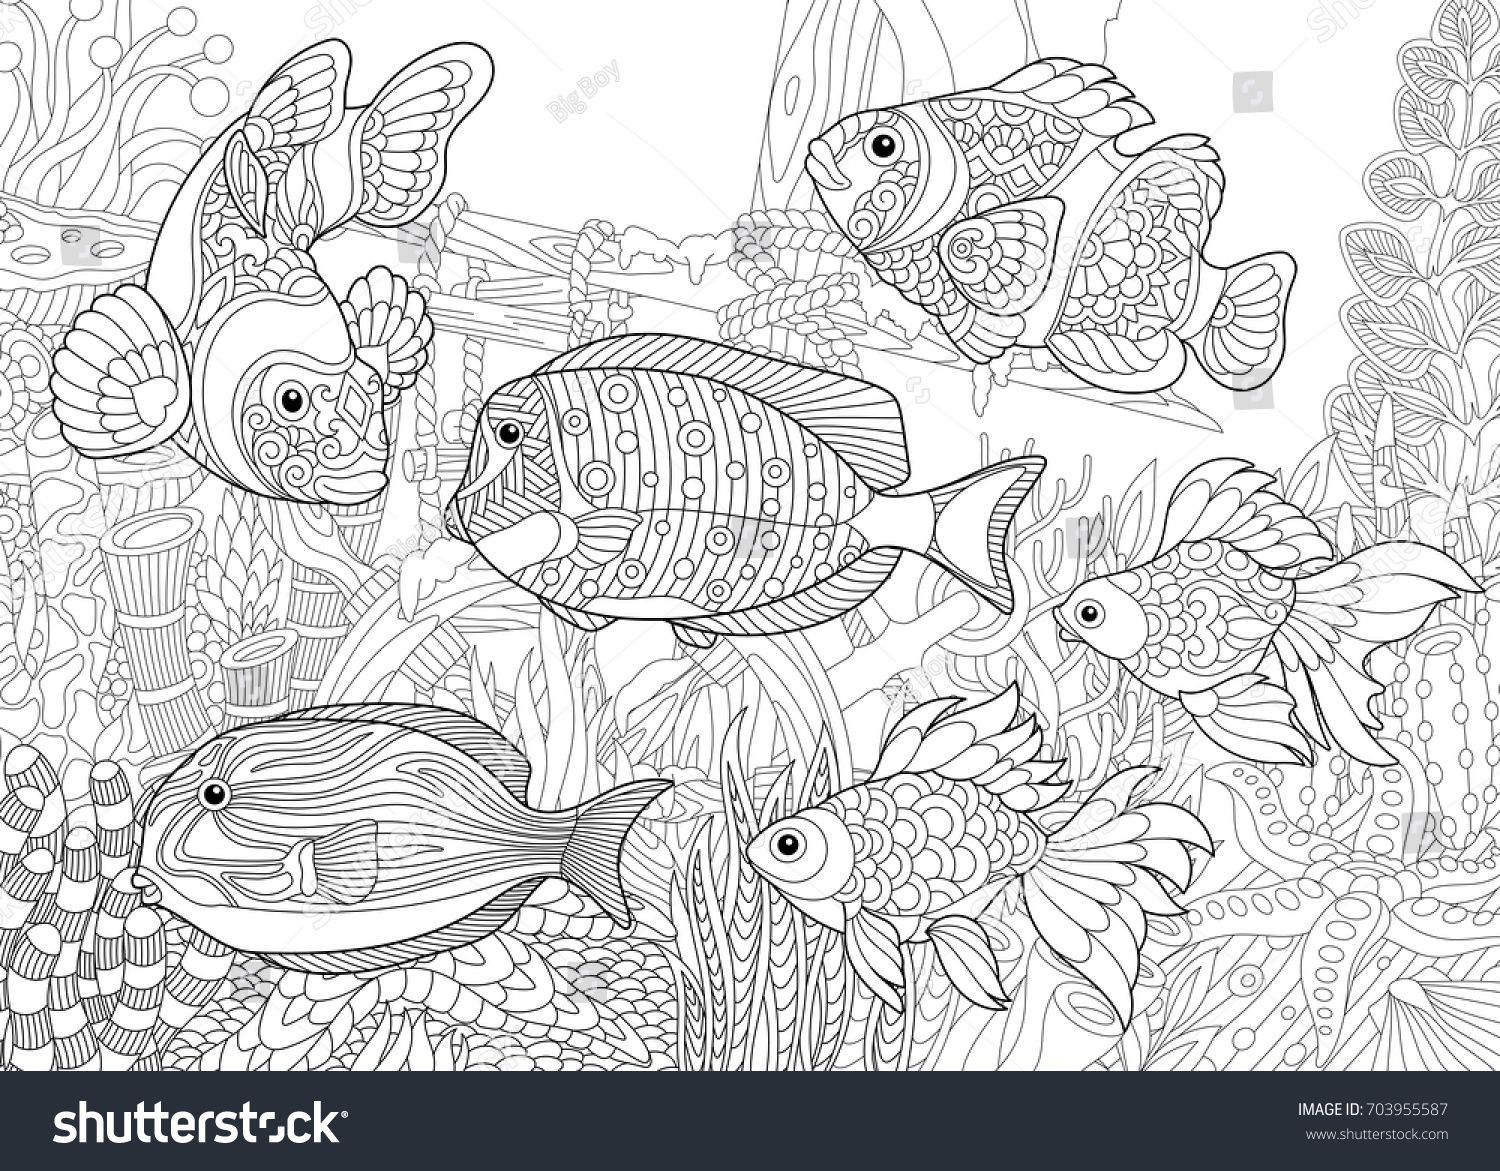 Coloring Page Of Underwater World Different Fish Species On The